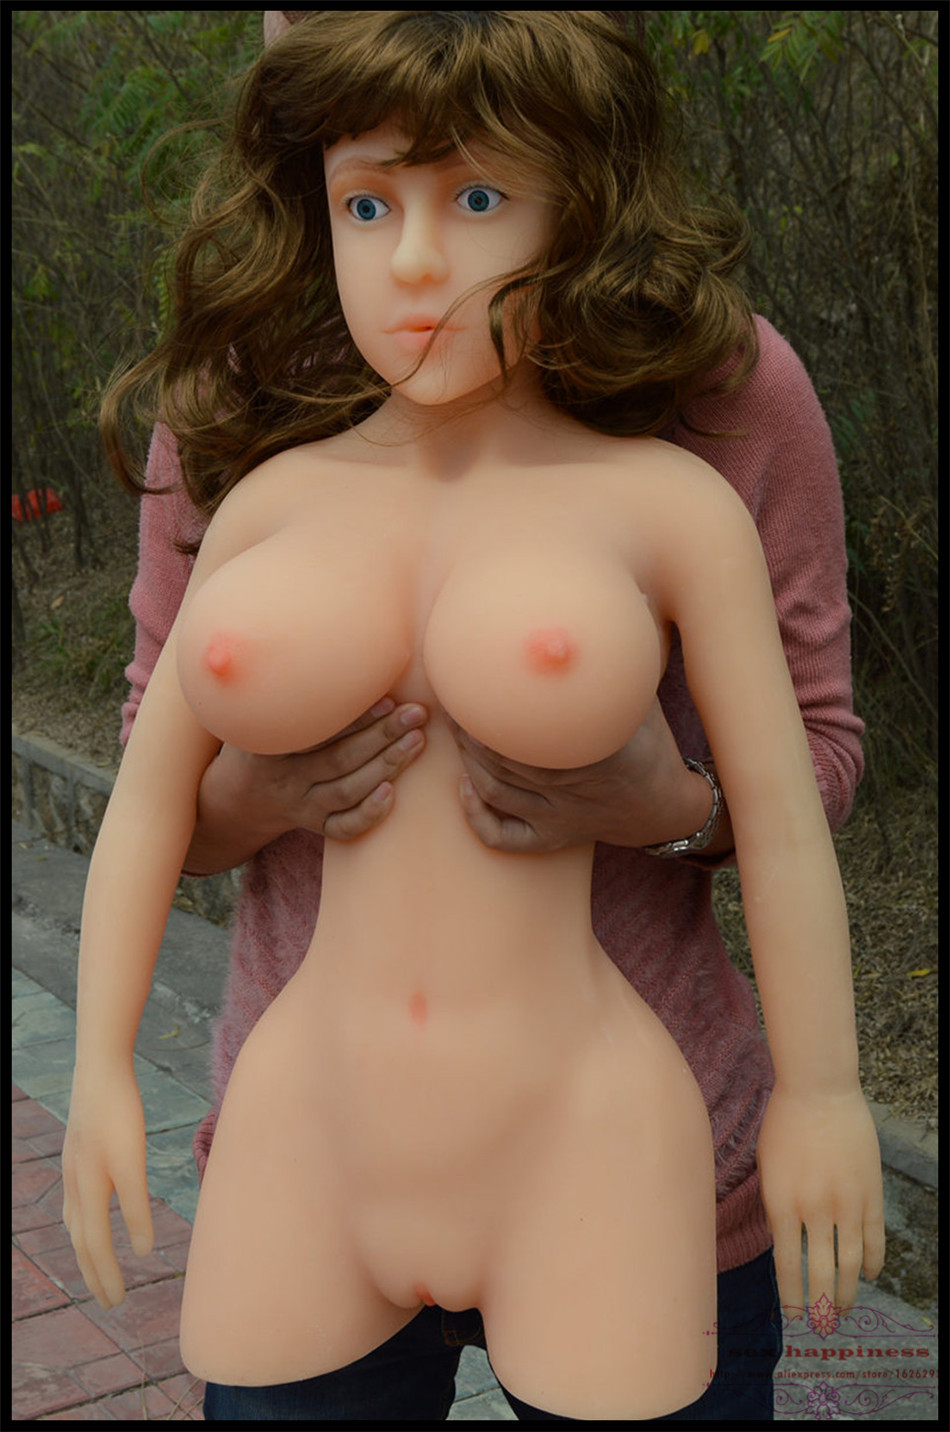 Life size gay real full silicone sex dolls solid porn love doll dick big breast gay